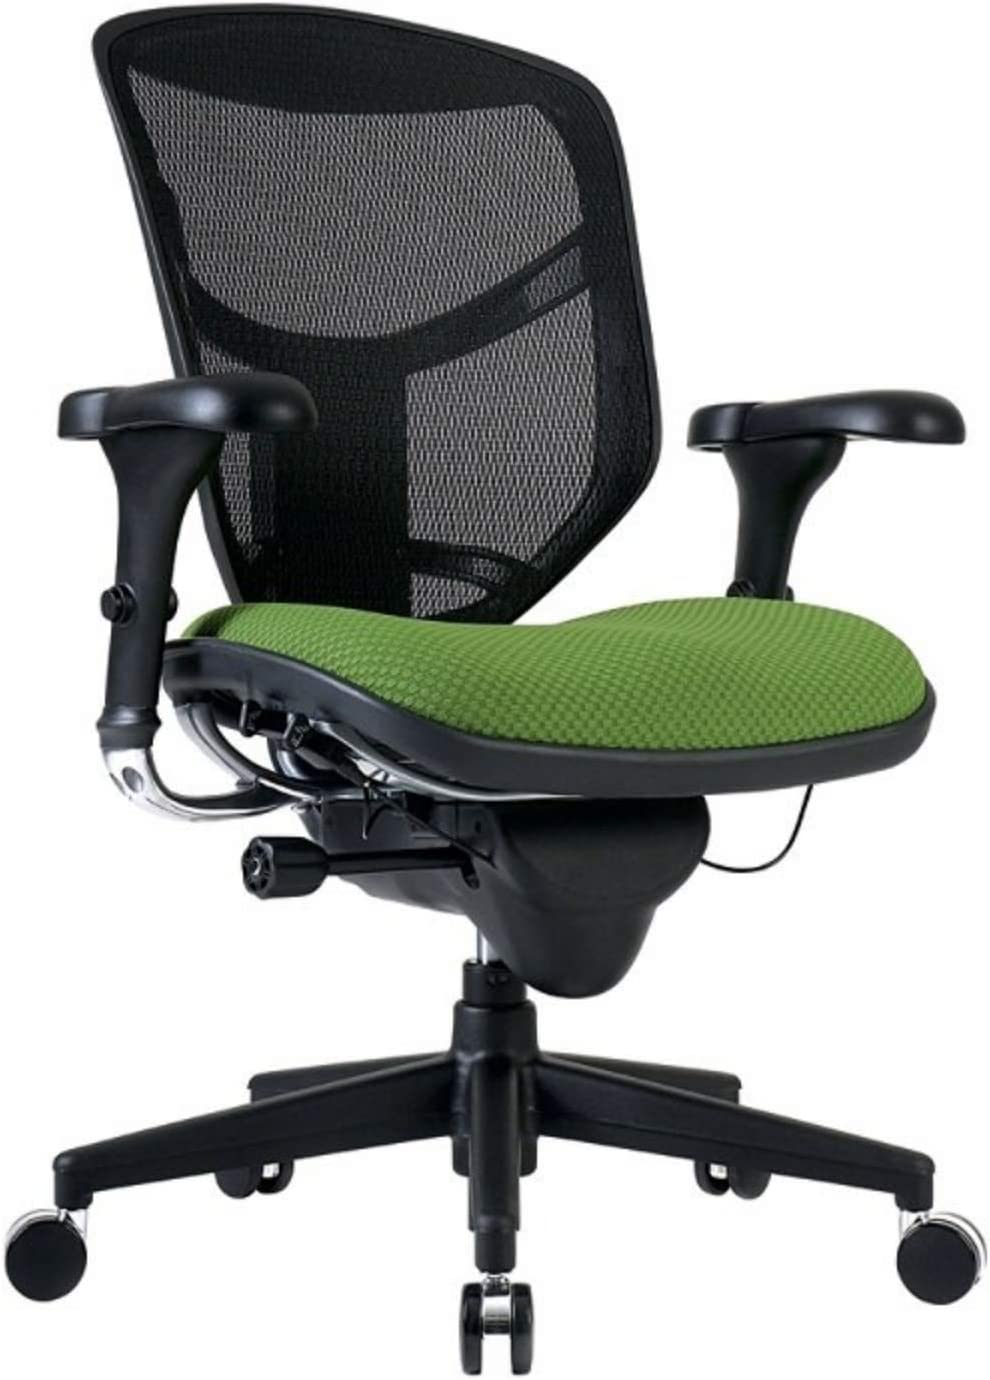 WorkPro Quantum 9000 Ergonomic Mesh/Fabric Mid-Back Manager's Chair, Lime/Black